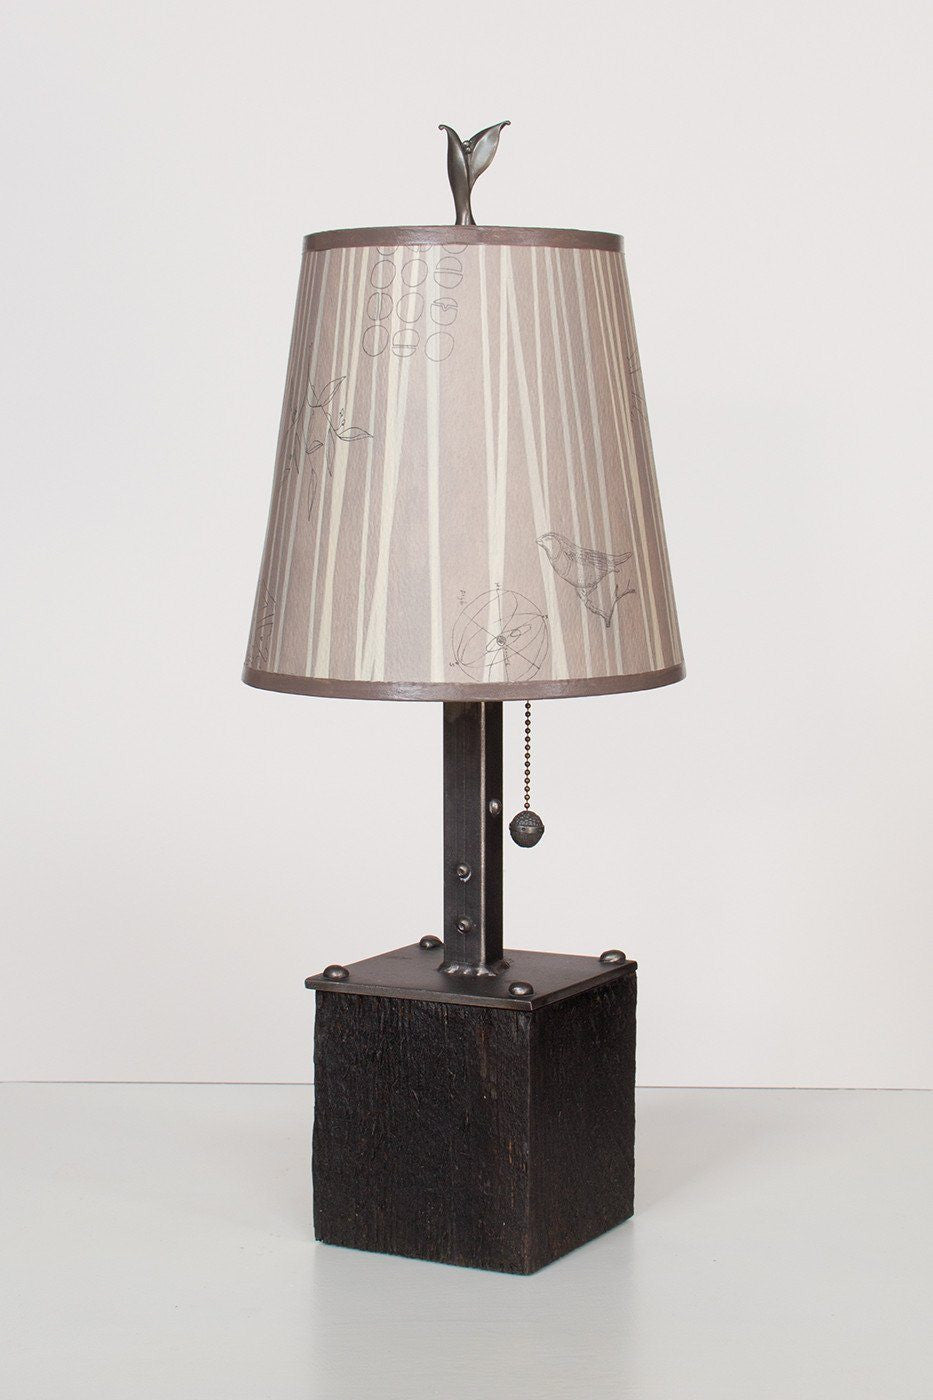 Steel Table Lamp on Reclaimed Wood with Small Drum Shade in Birch Lit